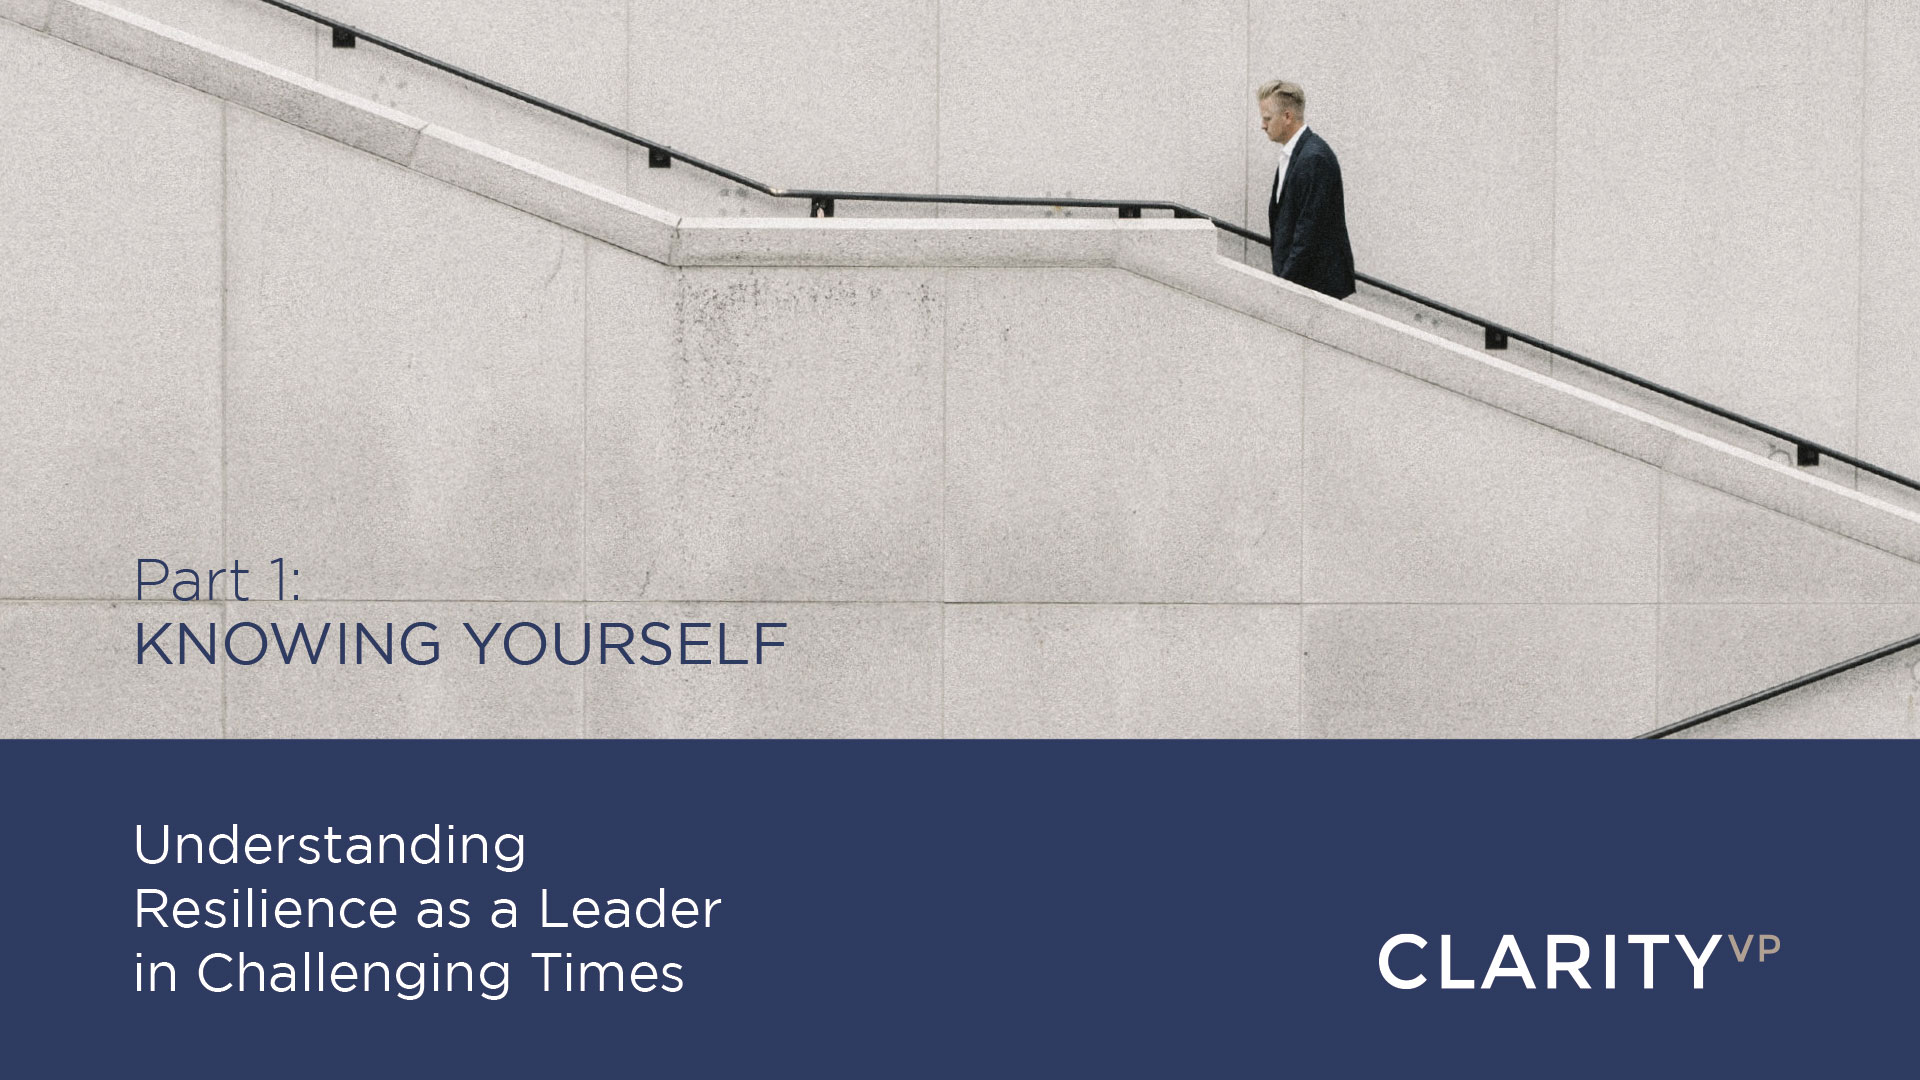 Part 1: Knowing Yourself – Understanding Resilience as a Leader in Challenging Times